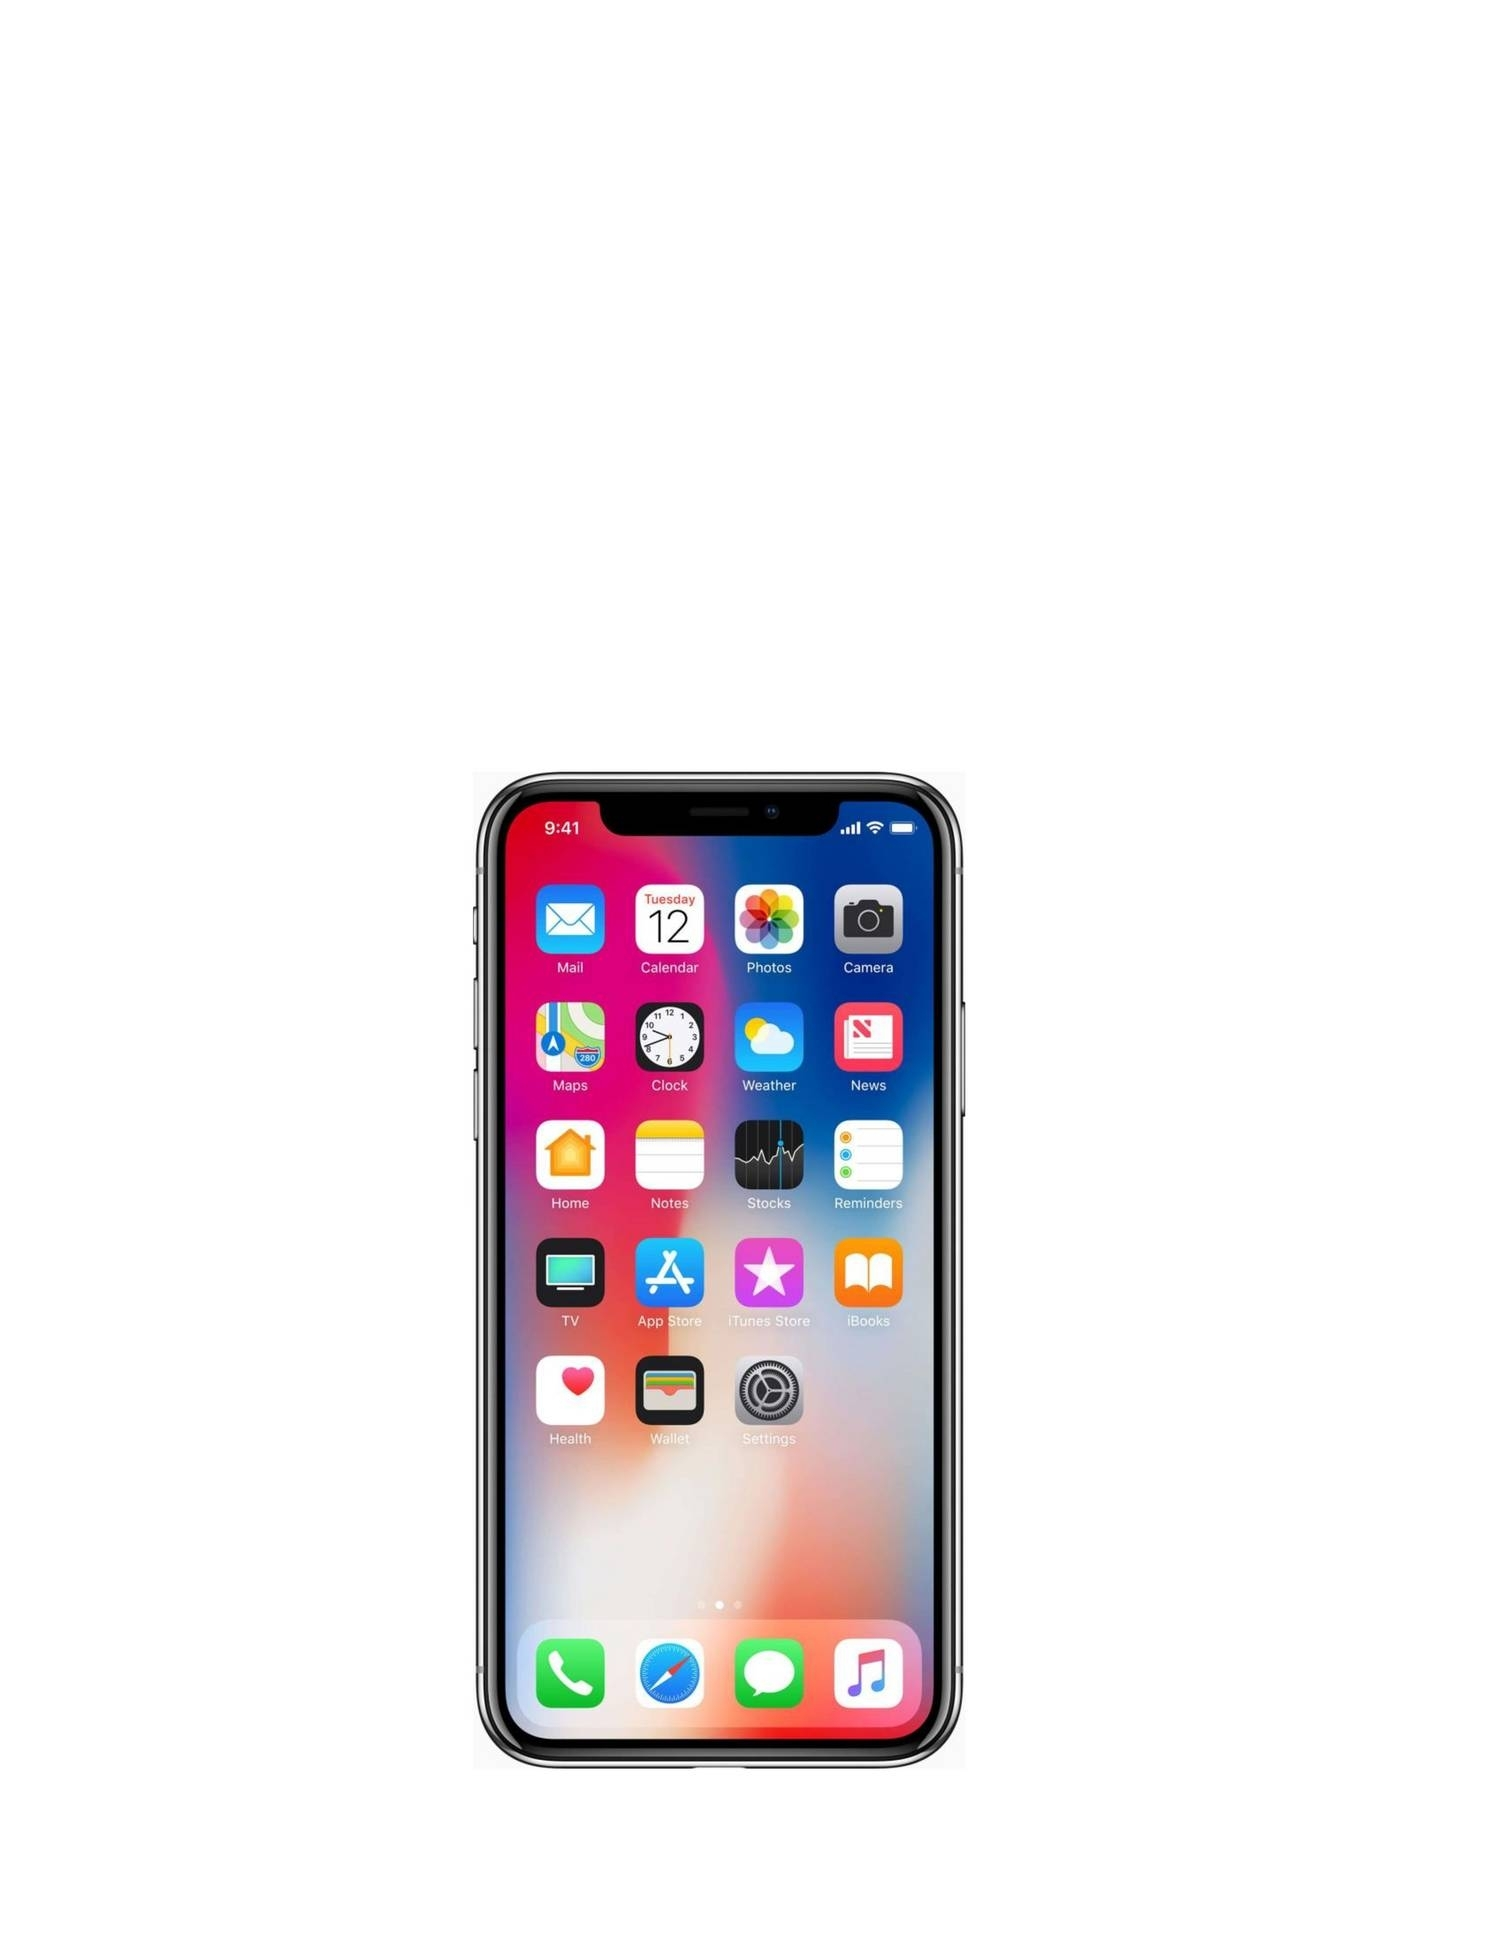 Iphone X Printout Actual Size.docx | Docdroid